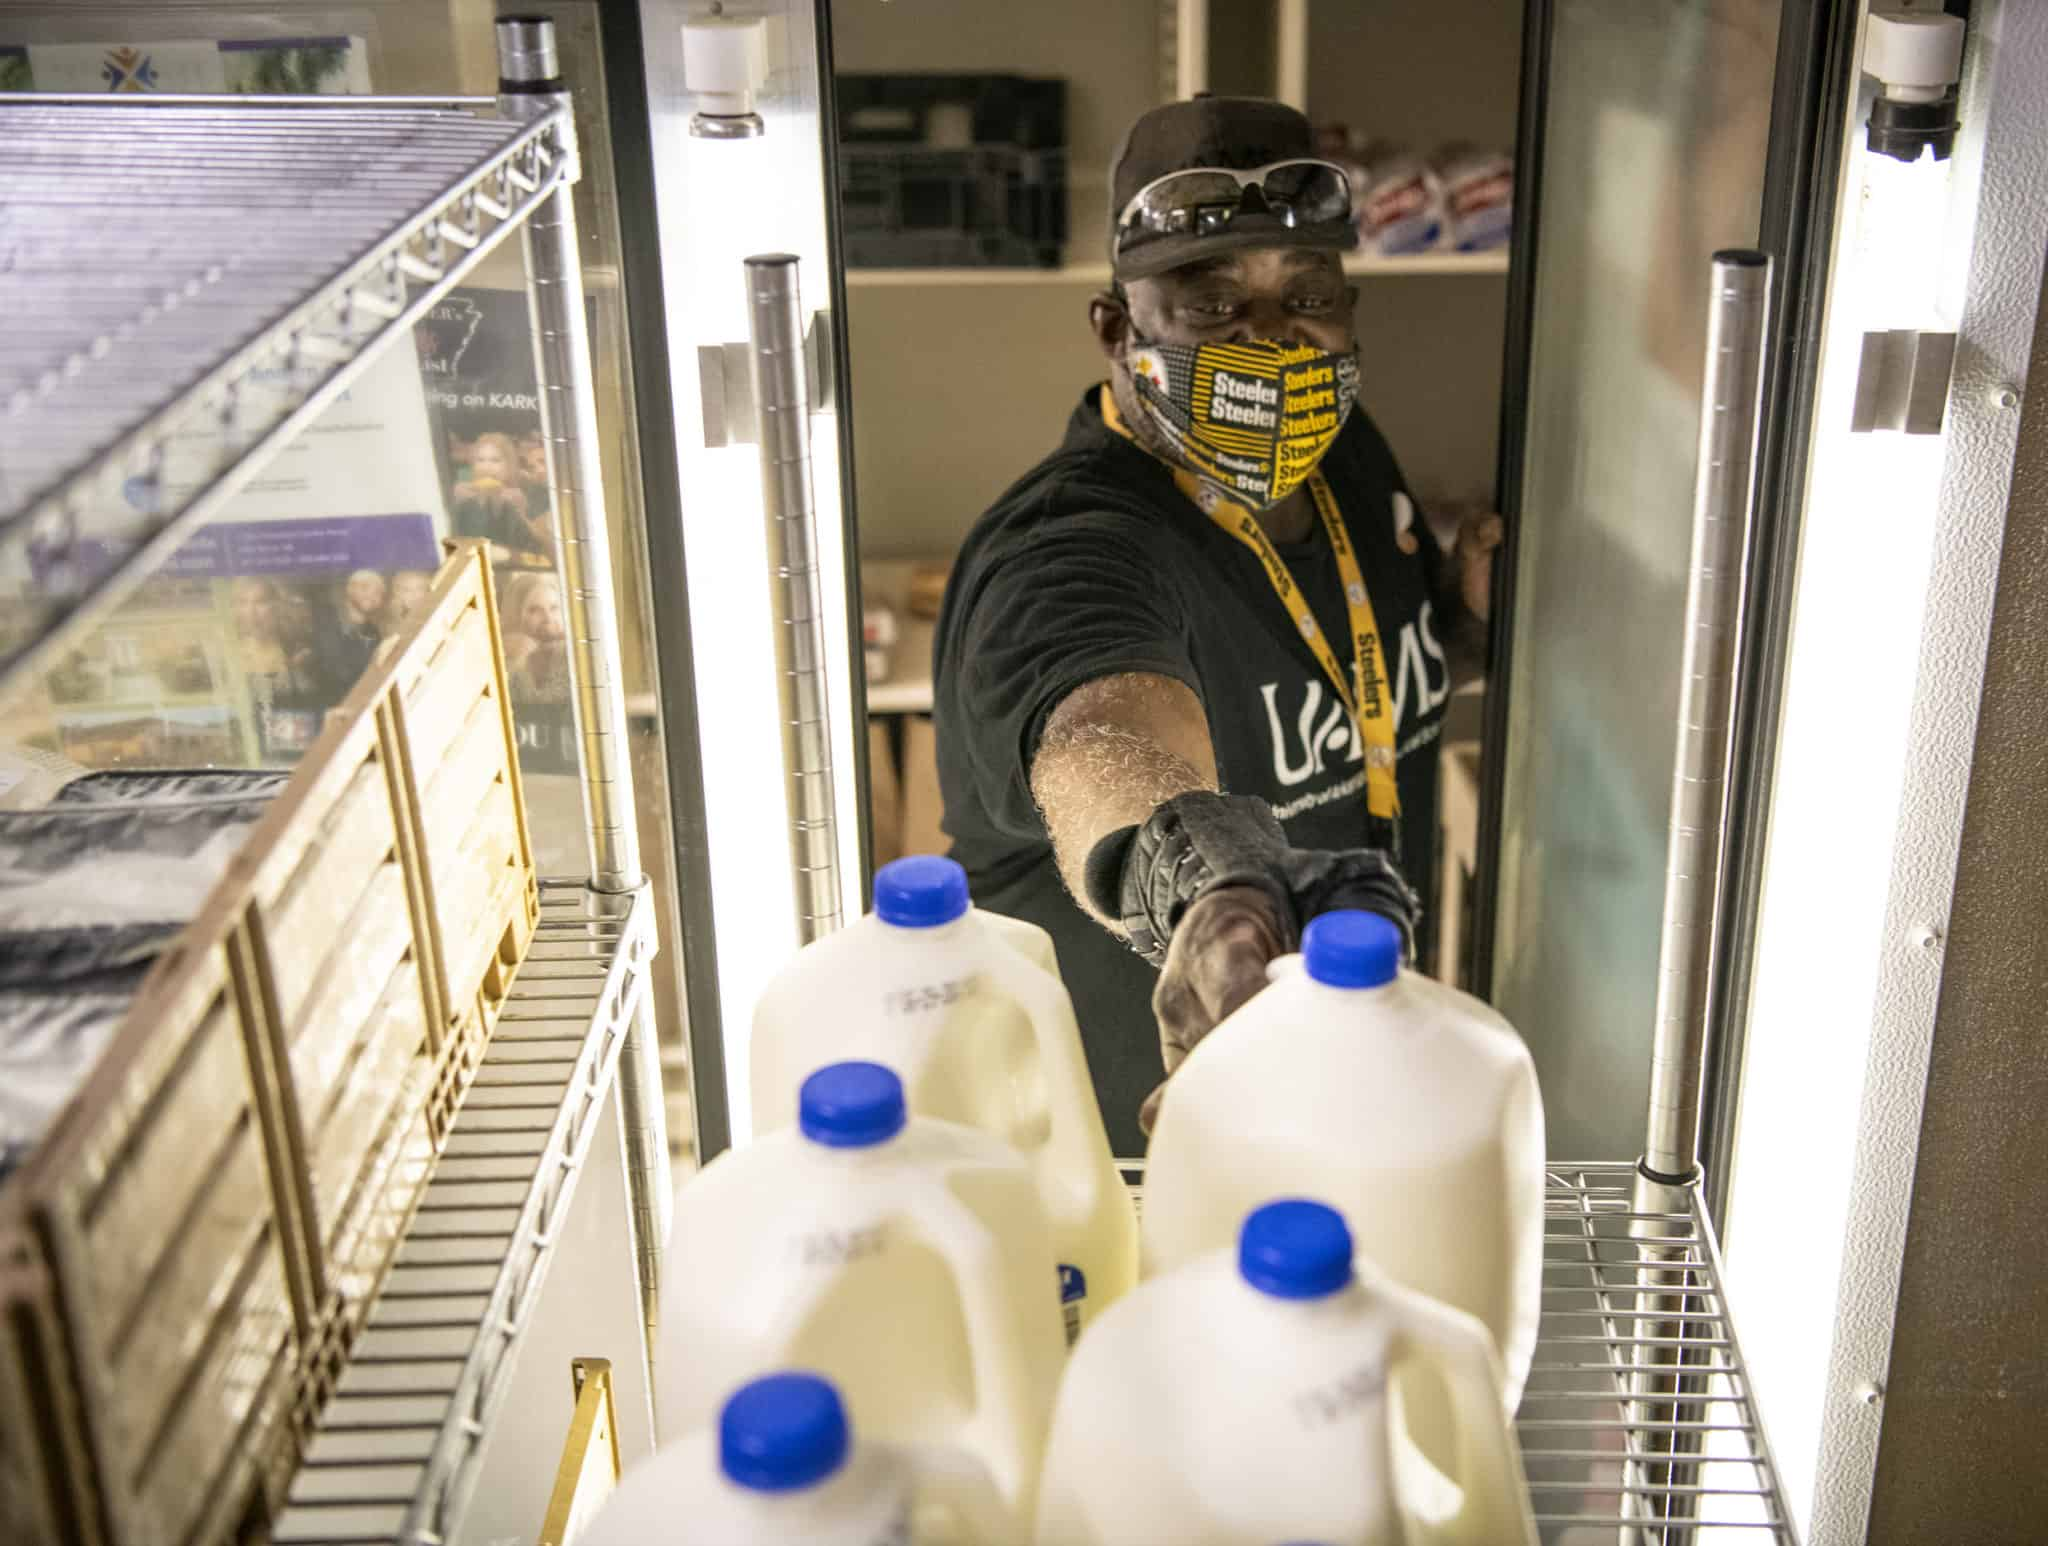 Calvin Tunstall picks up a gallon of milk at Stocked & Reddie. The food pantry celebrated its first birthday in July.